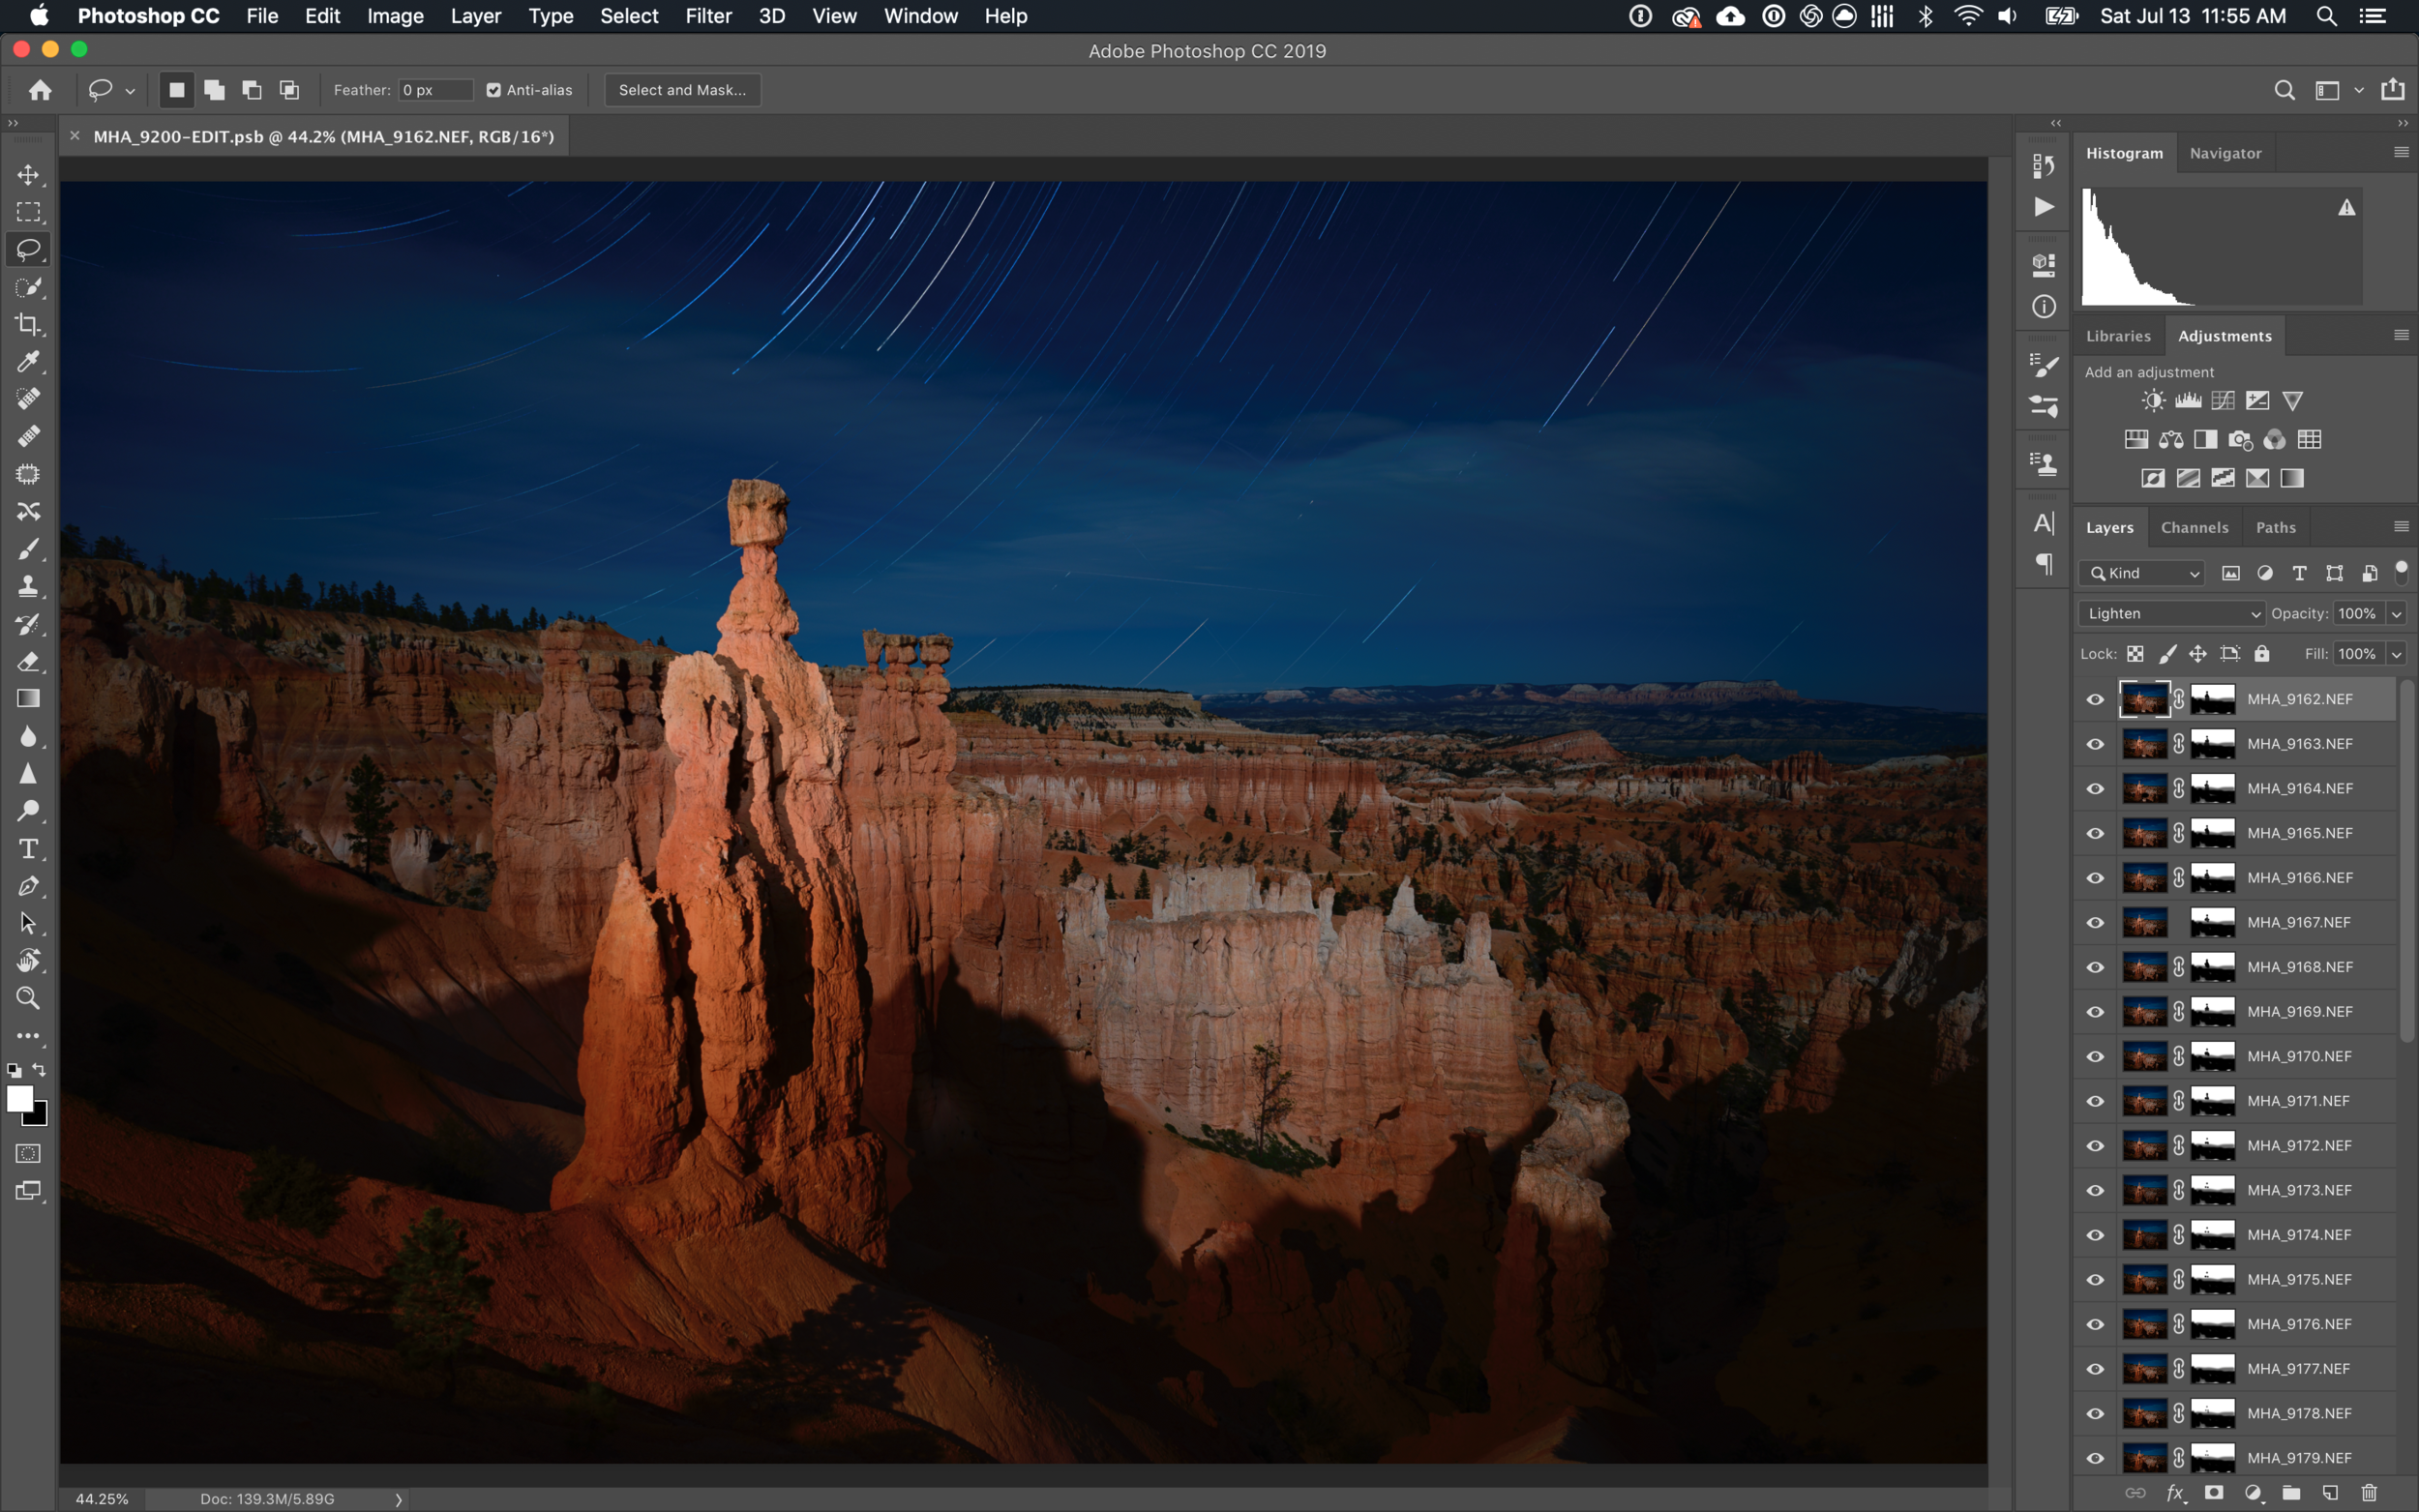 A 4 GB, 38-layer PSB file from Matt. Files this big don't show up in the Lightroom catalog.